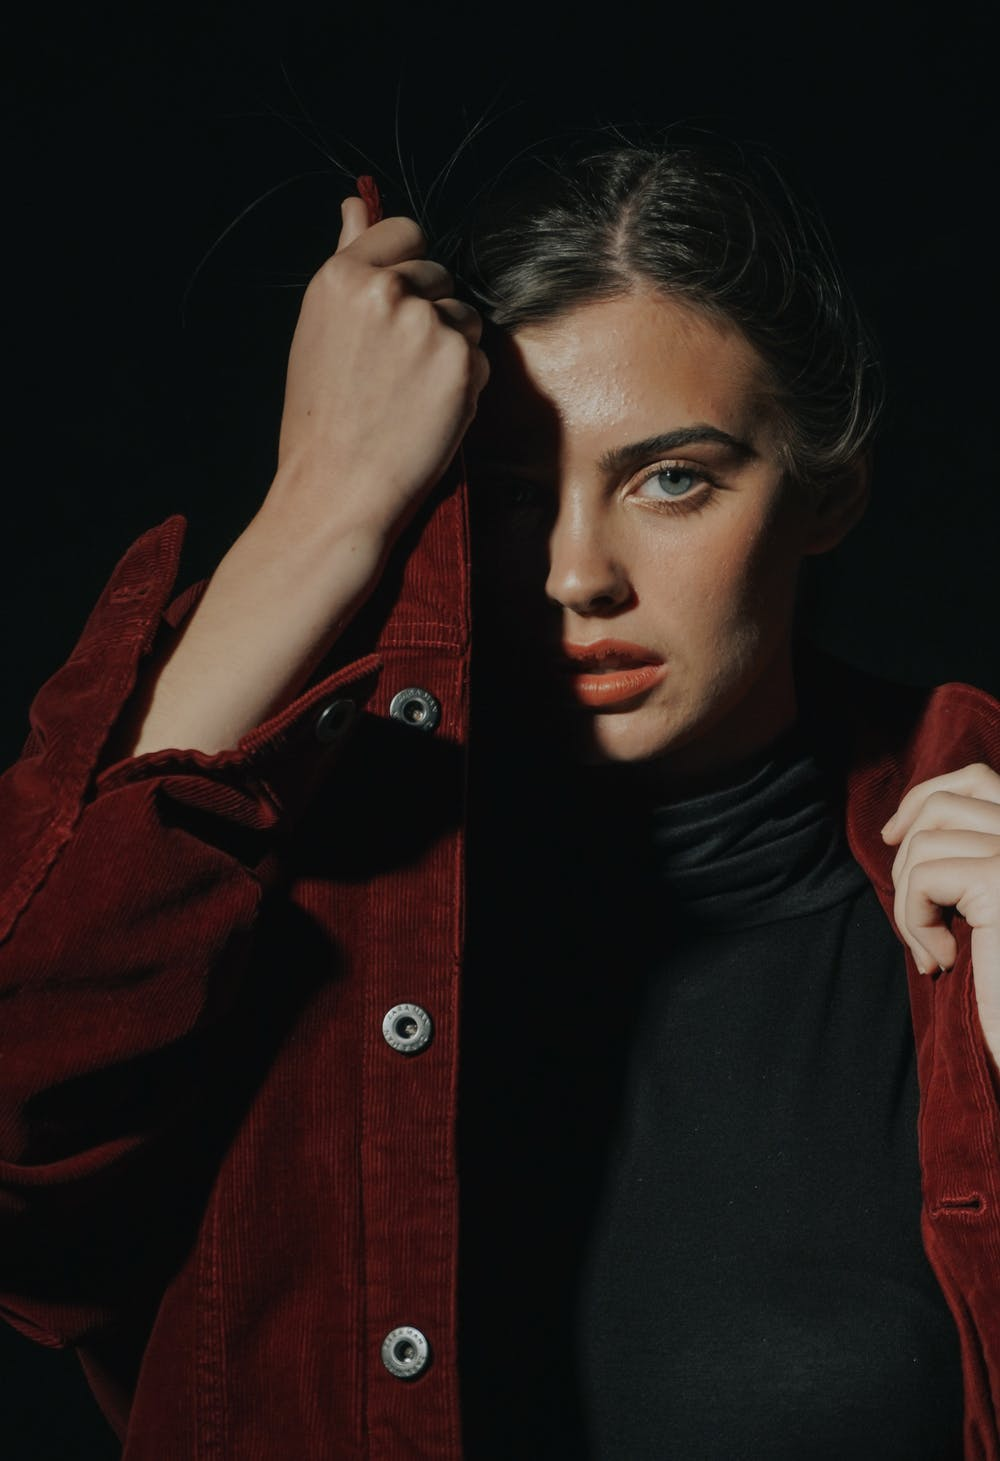 A woman wearing black shirt and red jacket. | Photo: Pexels